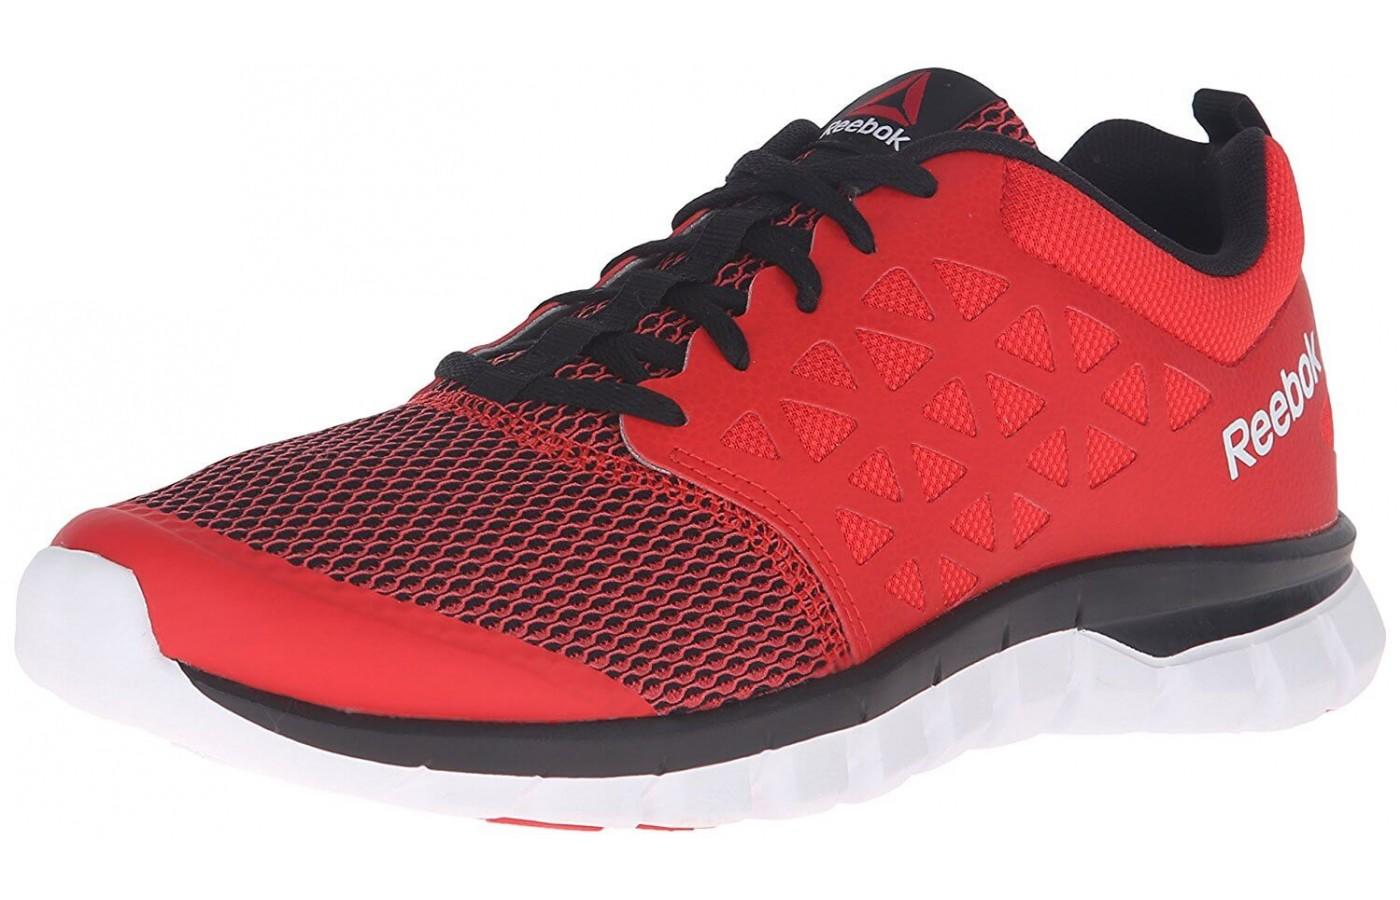 73387ddbfcf Reebok Sublite XT Cushion 2.0 - Buy or Not in Mar 2019